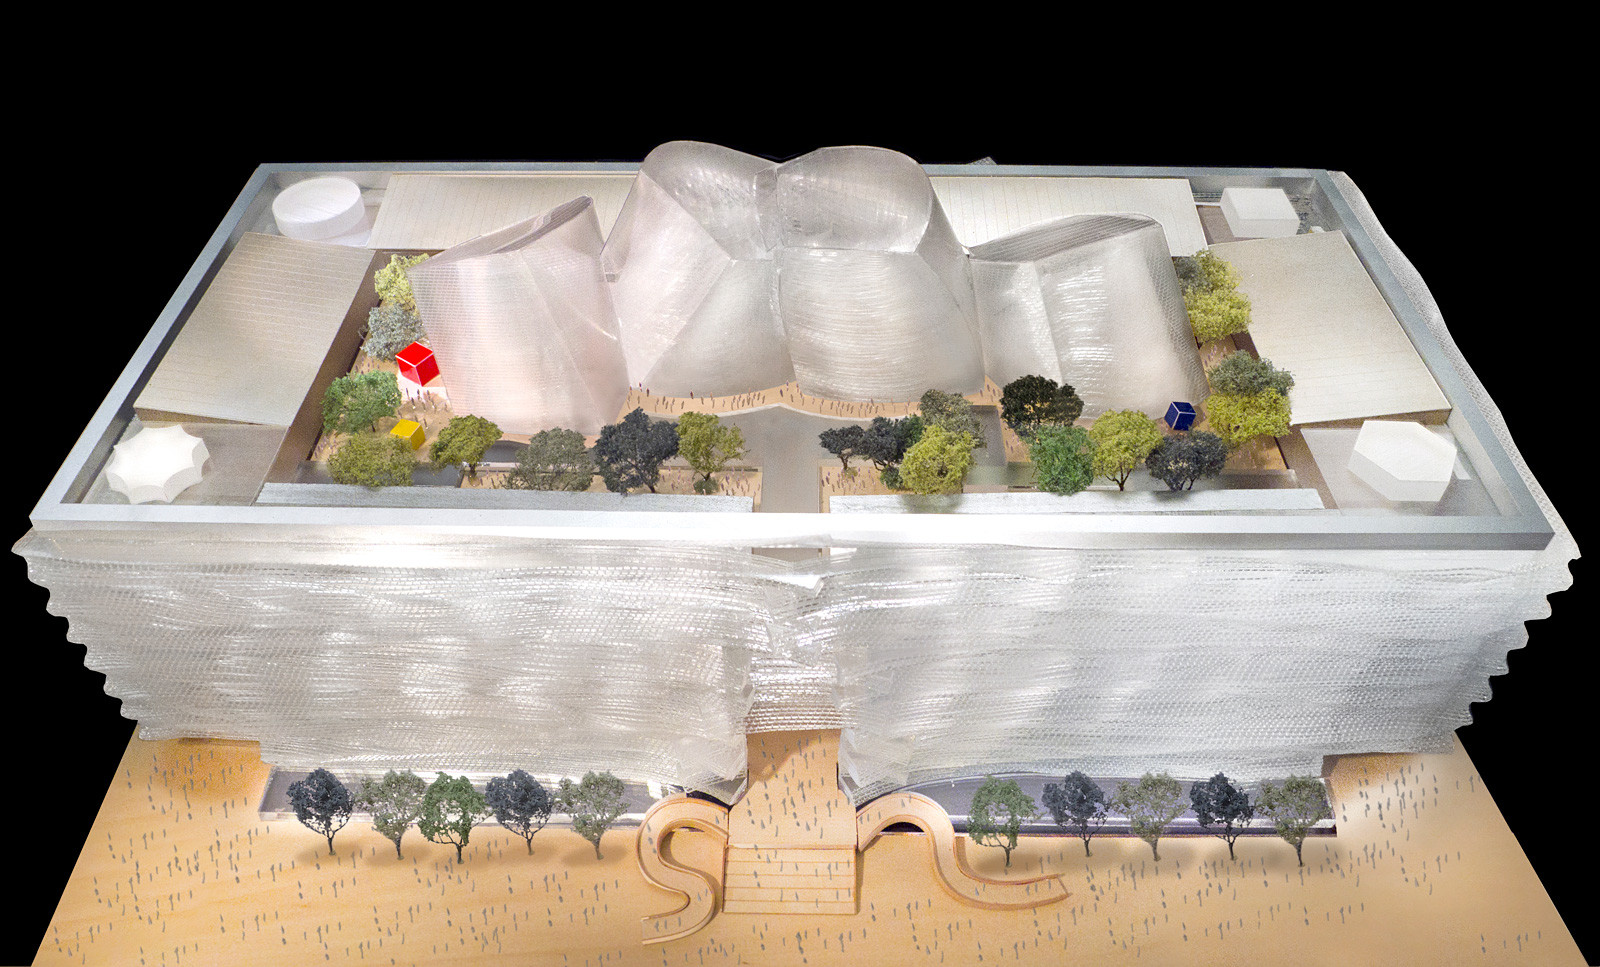 Roof Garden; Courtesy of Gehry Partners